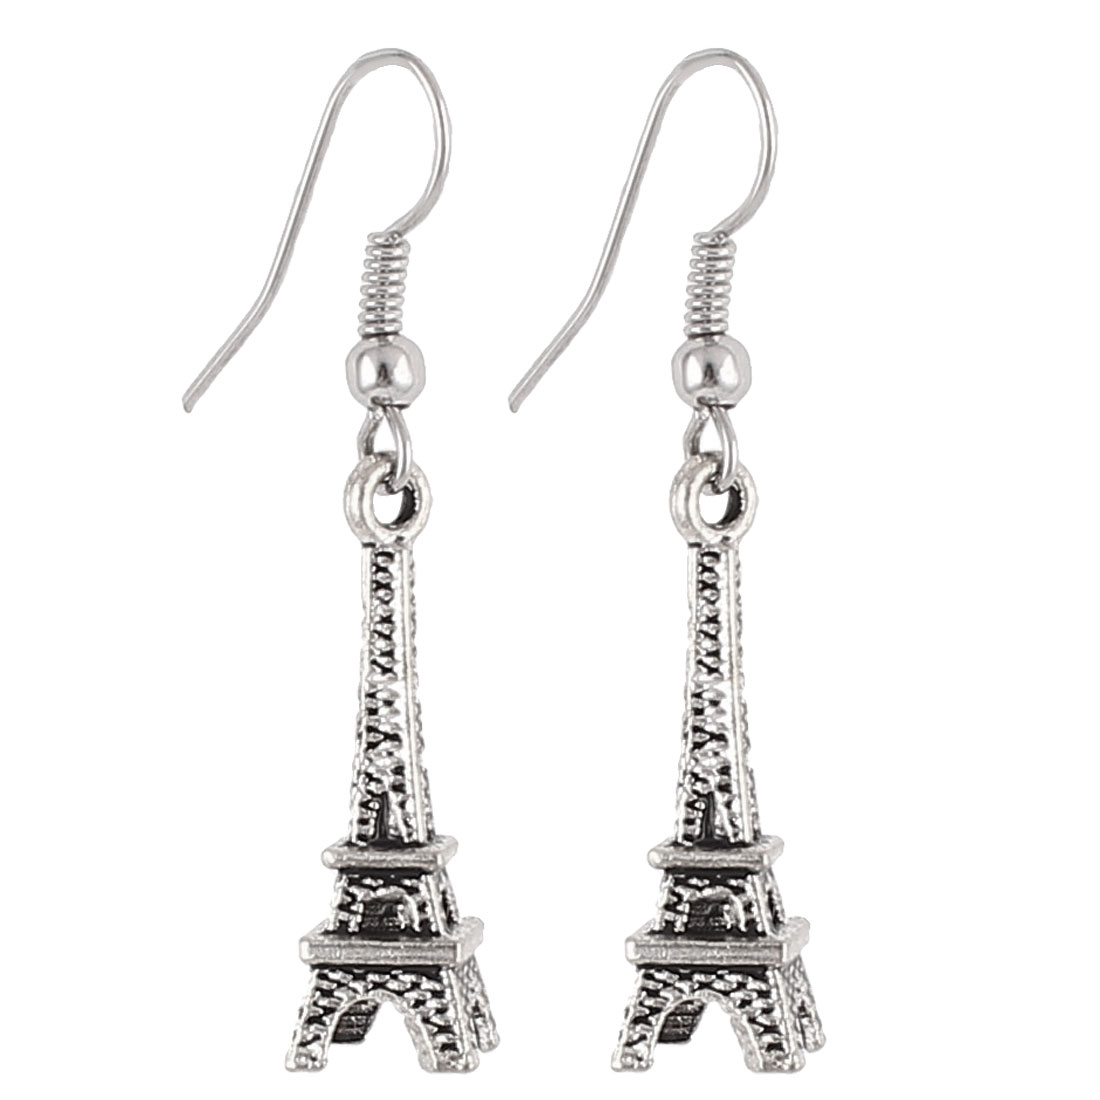 Eiffel Tower Decor Dangling Fish Hook Earrings Pierced Eardrop Silver Tone Pair